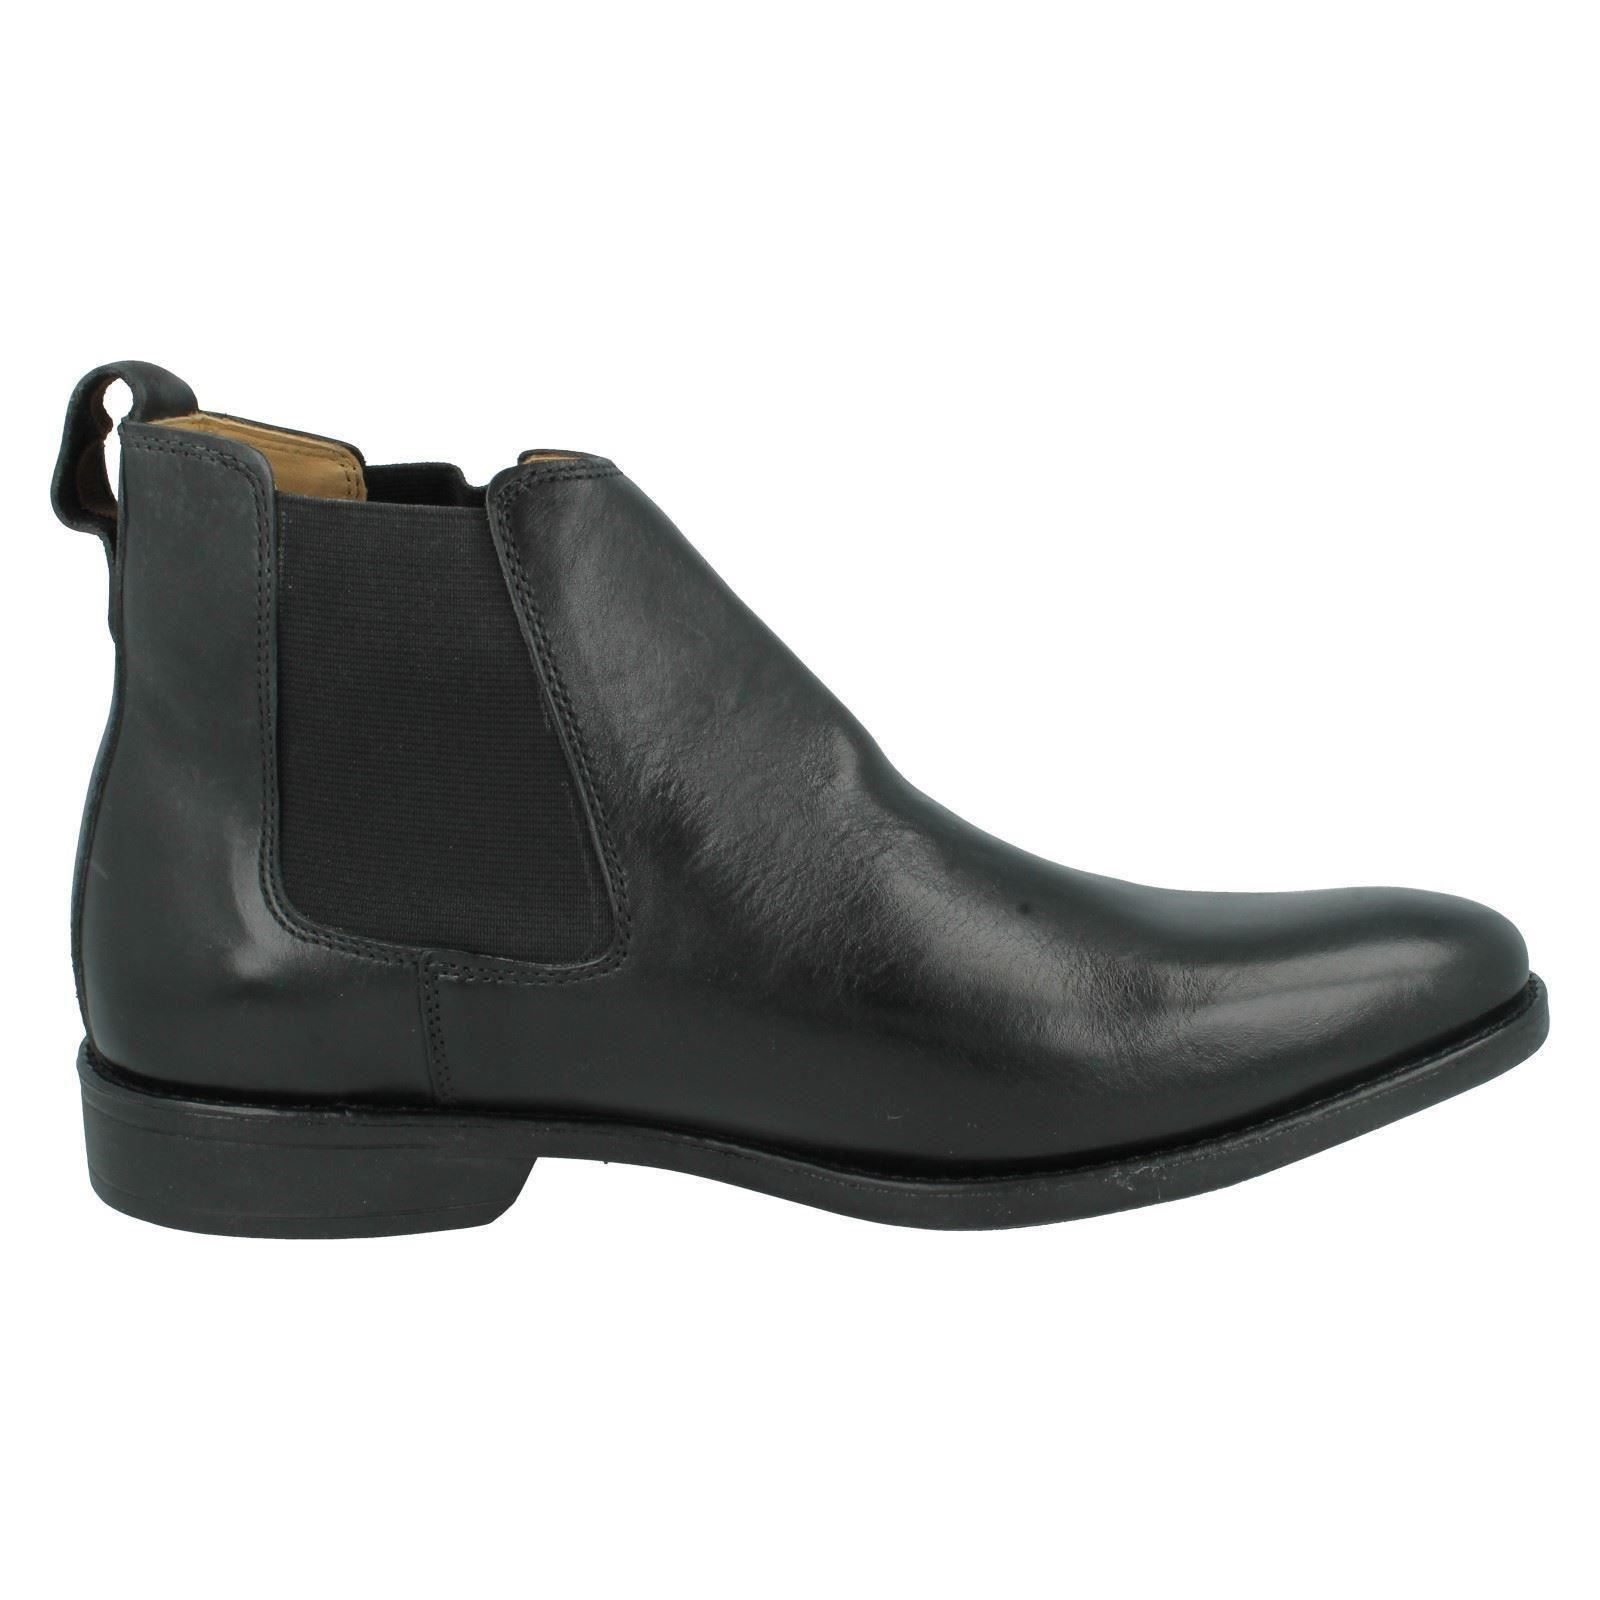 Mens Anatomic & Co Formal Boots Boots Boots 'Colombo' ~ K 9fb64a